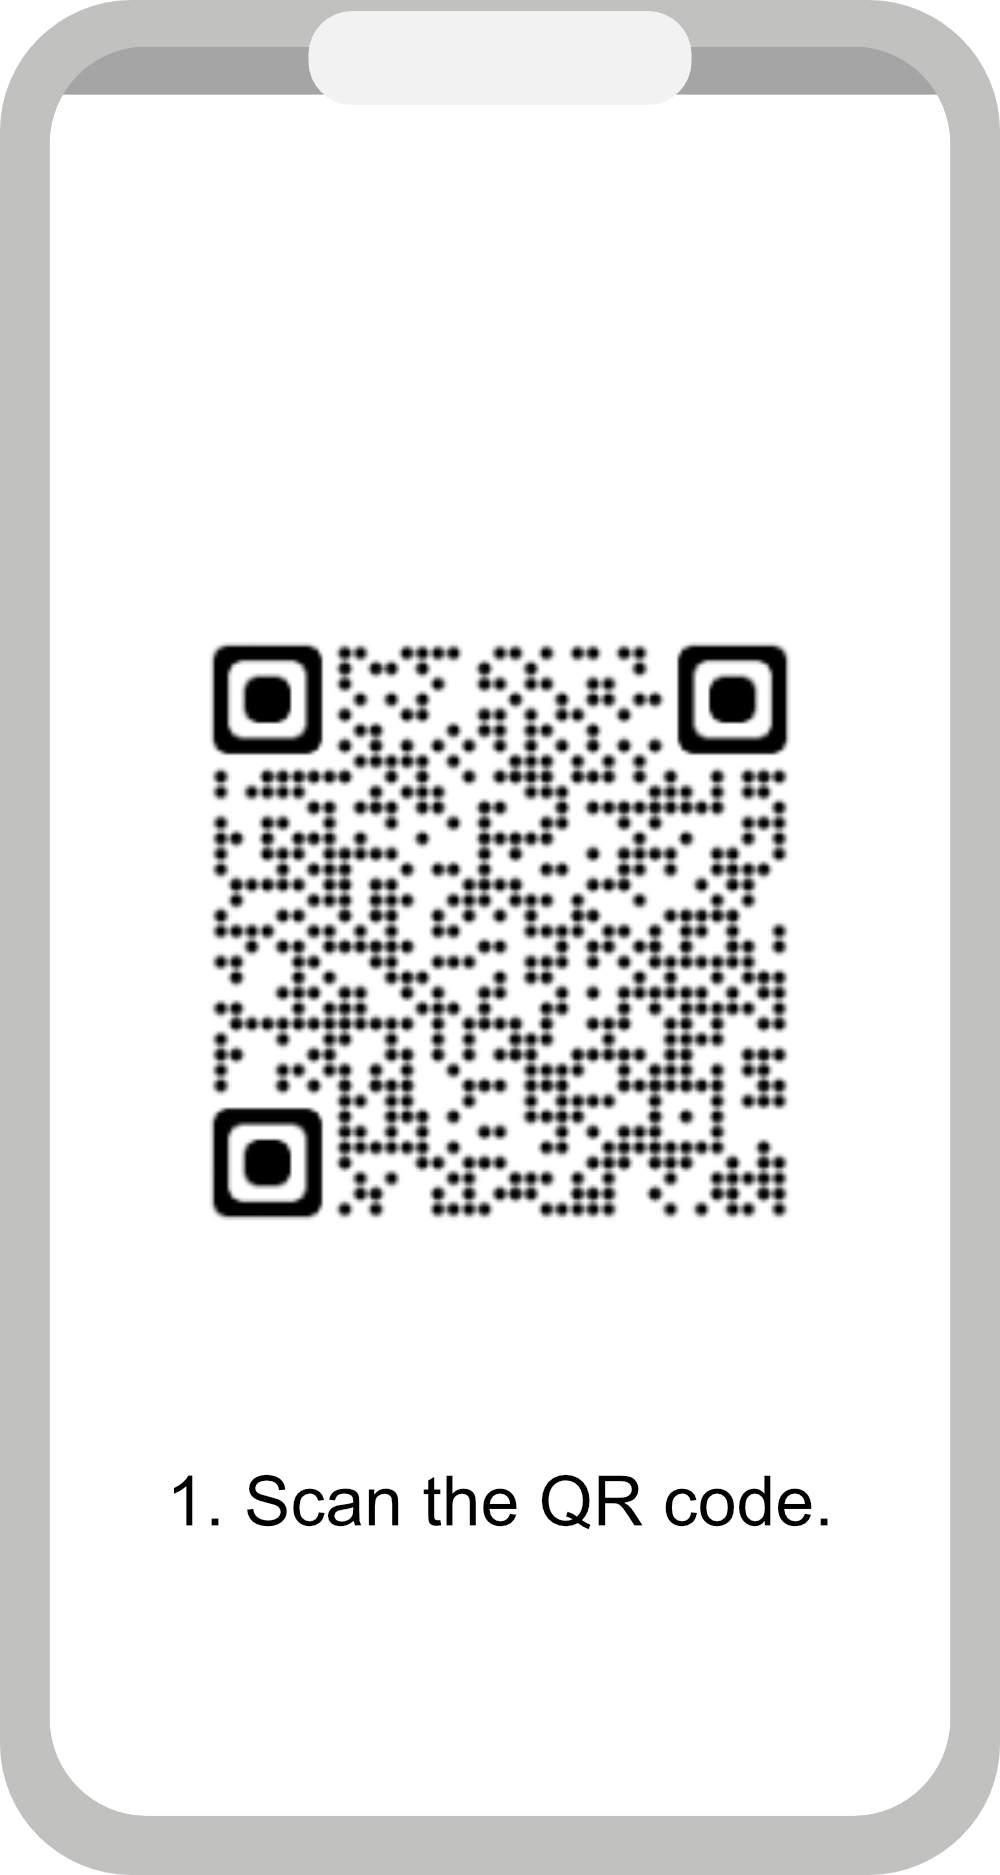 1. Scan the QR code